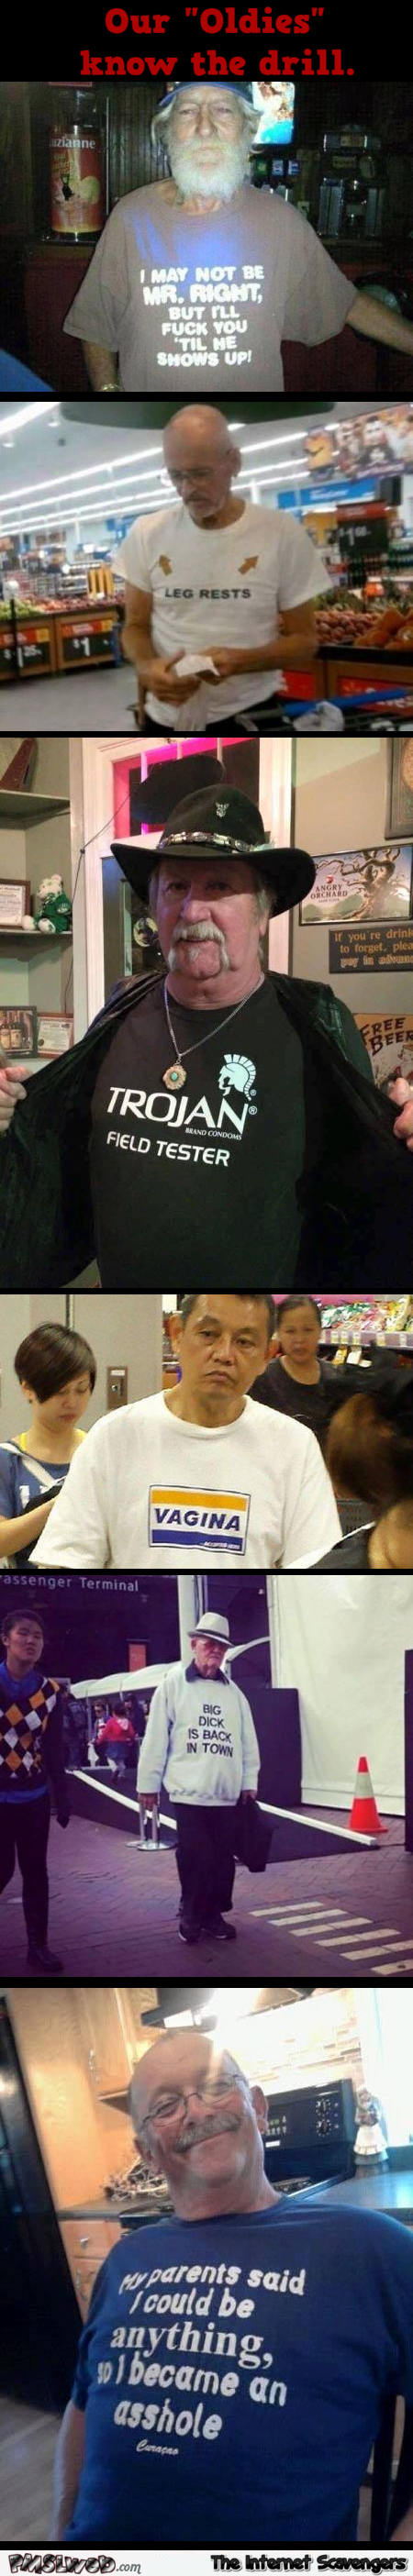 Our Oldies know the drill funny t-shirts @PMSLweb.com